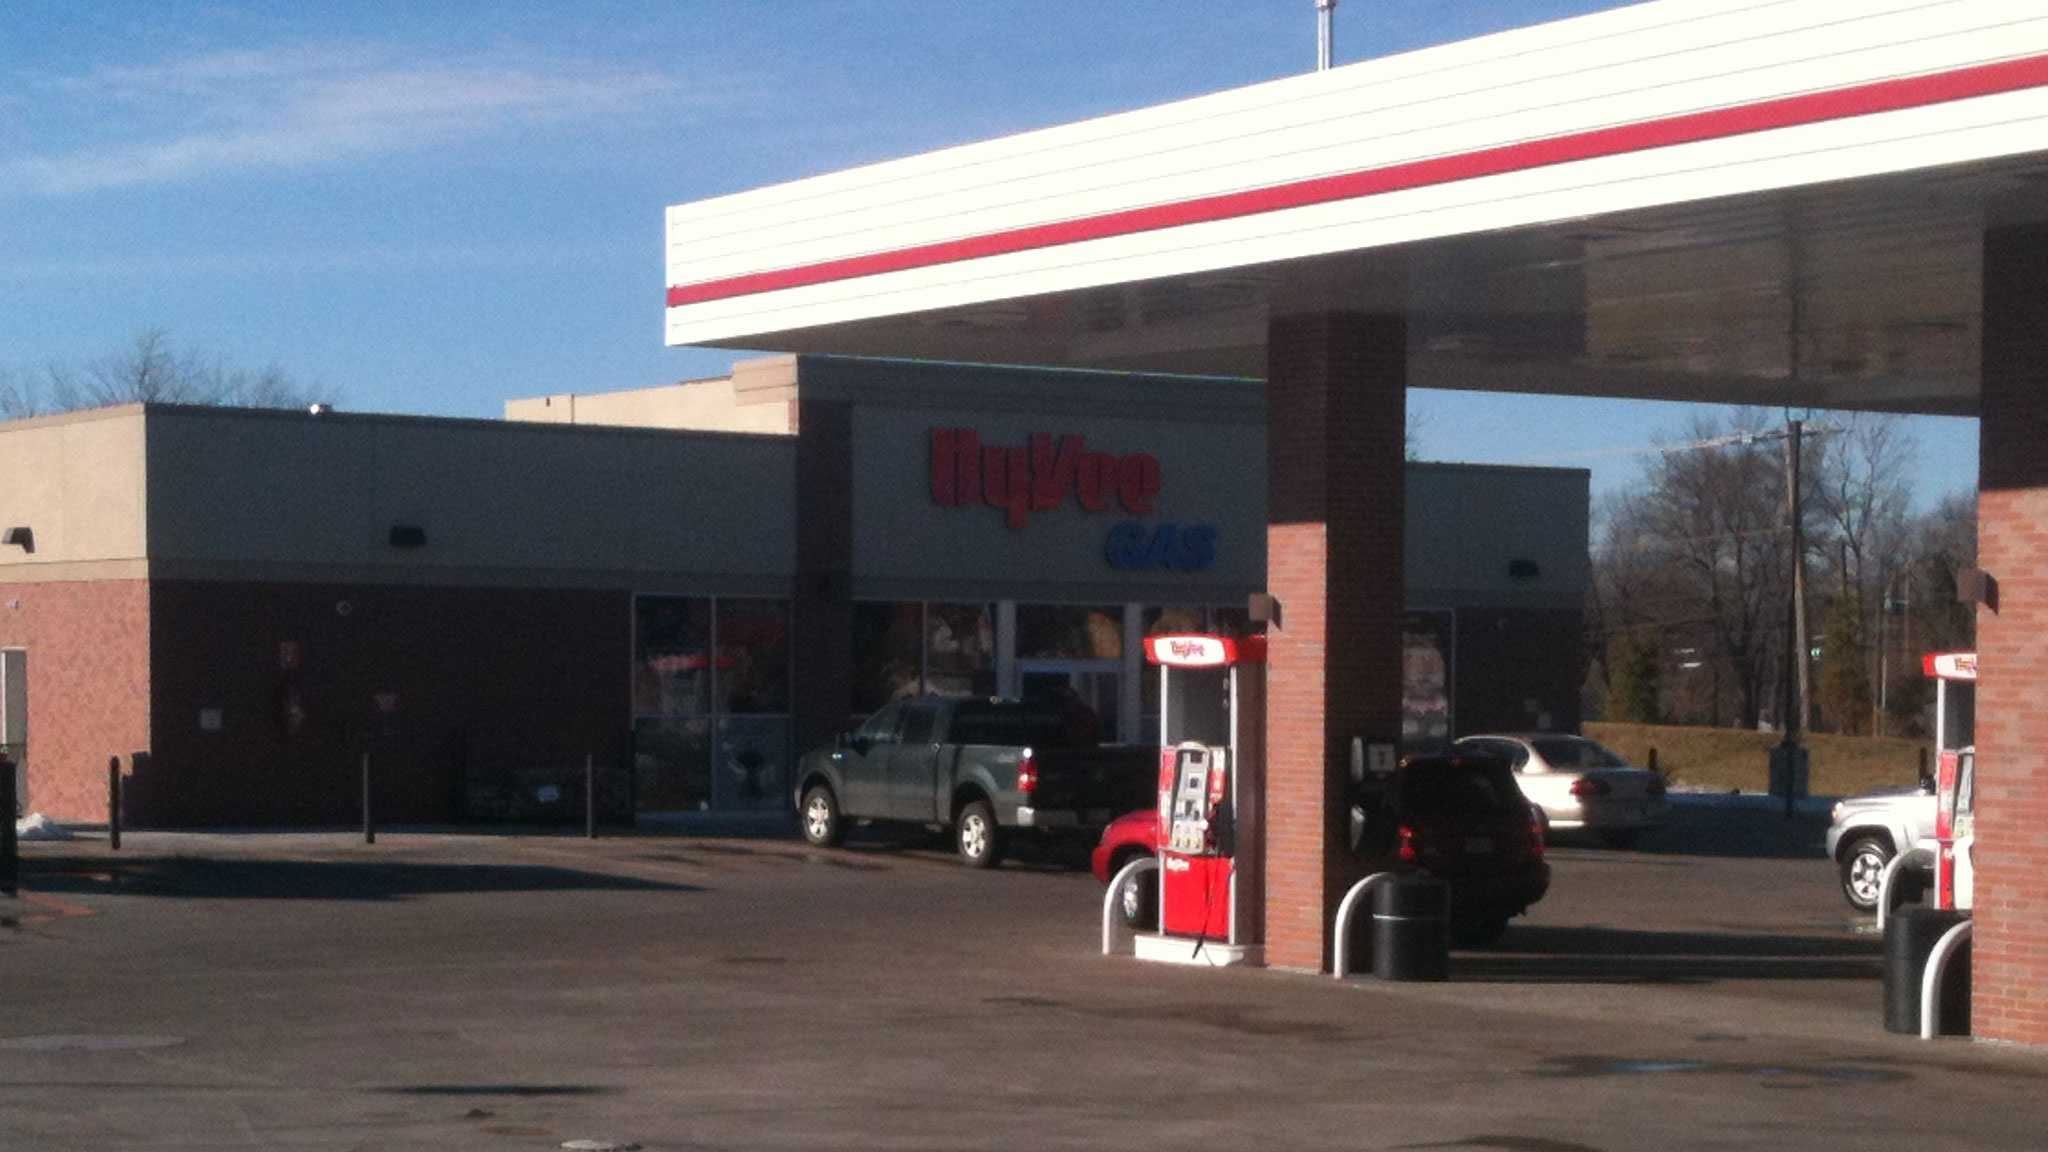 HyVee attempted ATM theft